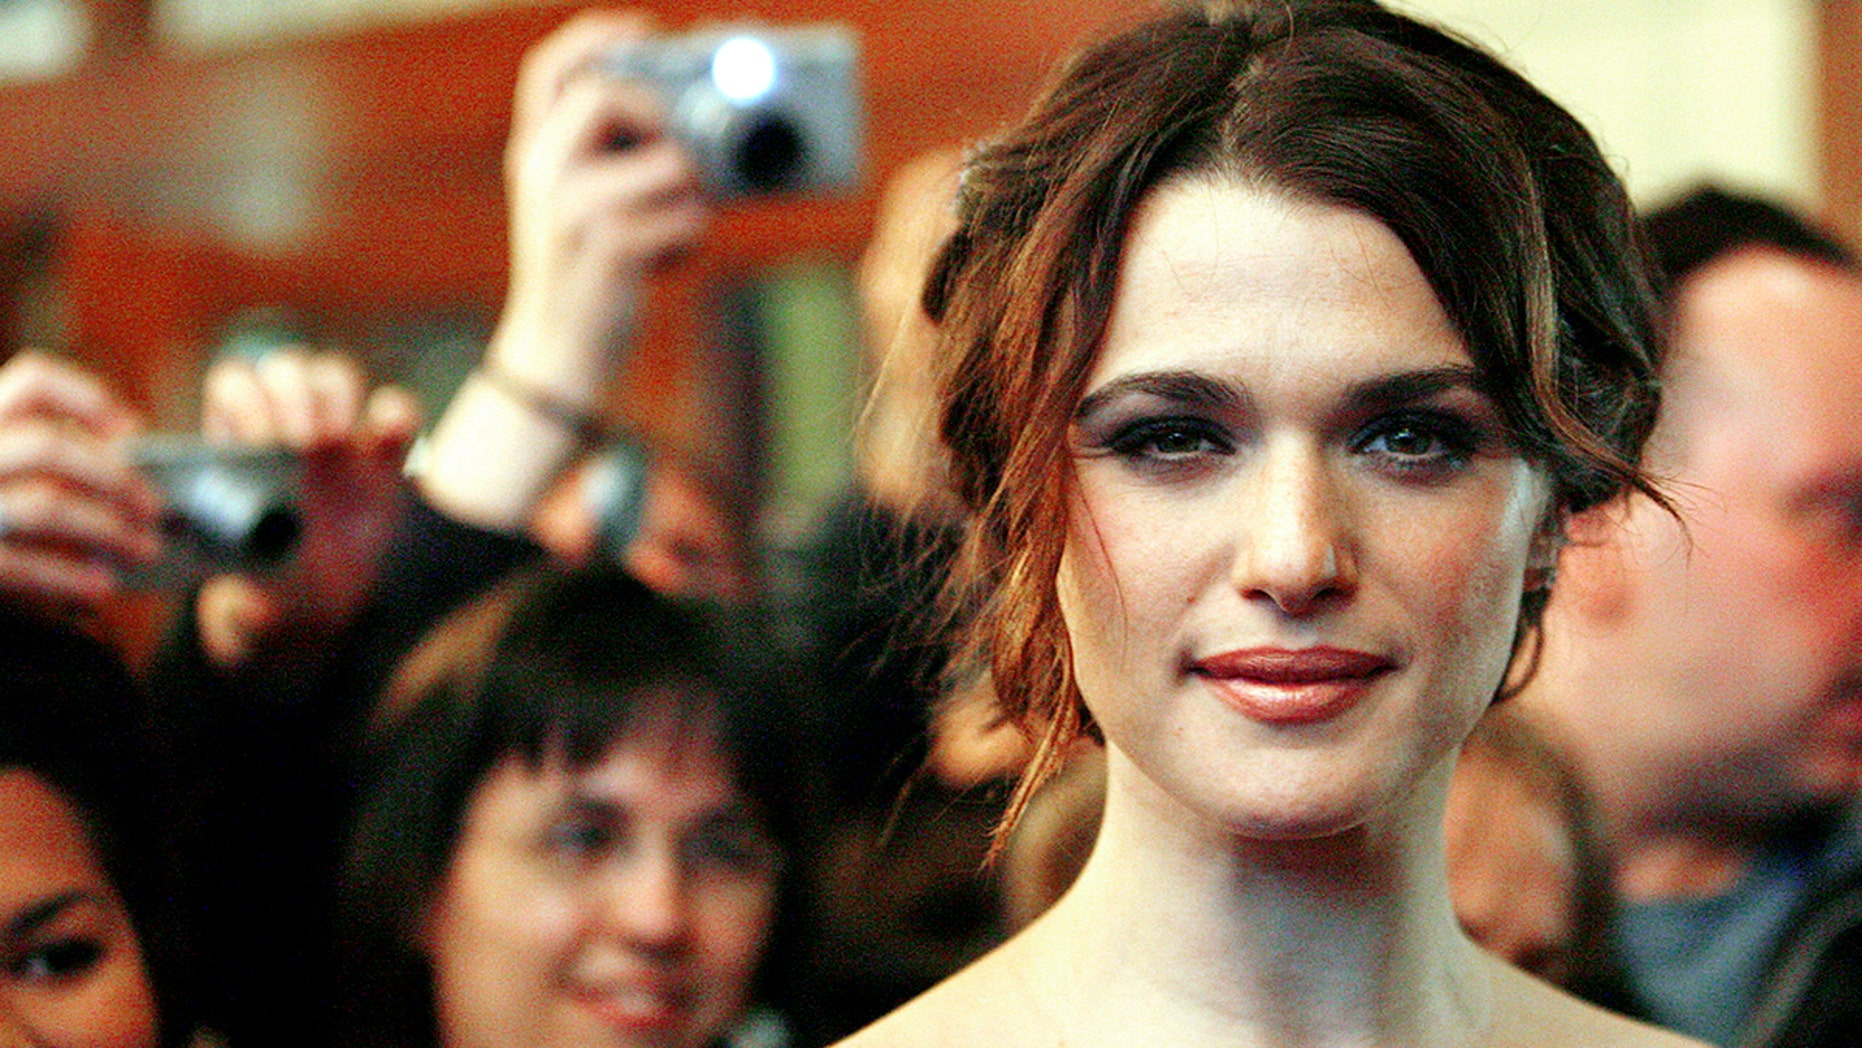 """Cast member Rachel Weisz poses at the premiere of """"The Fountain"""" at the Elgin theatre during the 31st Toronto International Film Festival in Toronto September 12, 2006. The festival runs from September 7 until September 16. REUTERS/Mario Anzuoni (CANADA) - GM1DTMHELEAA"""